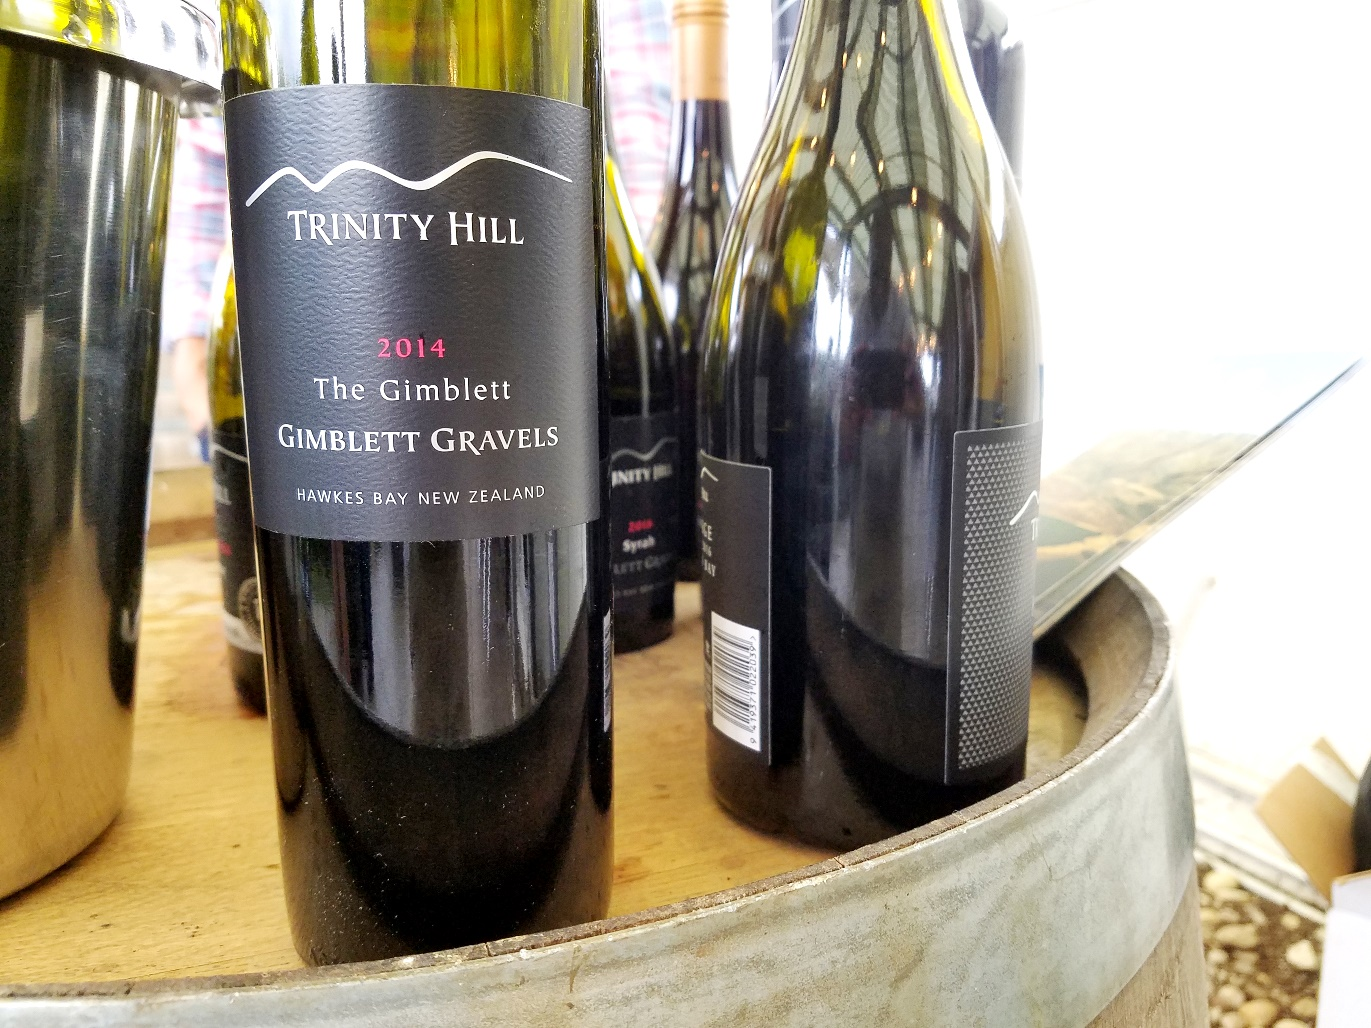 Trinity Hill, The Gimblett 2014, Gimblett Gravels, Hawkes Bay, New Zealand, Wine Casual